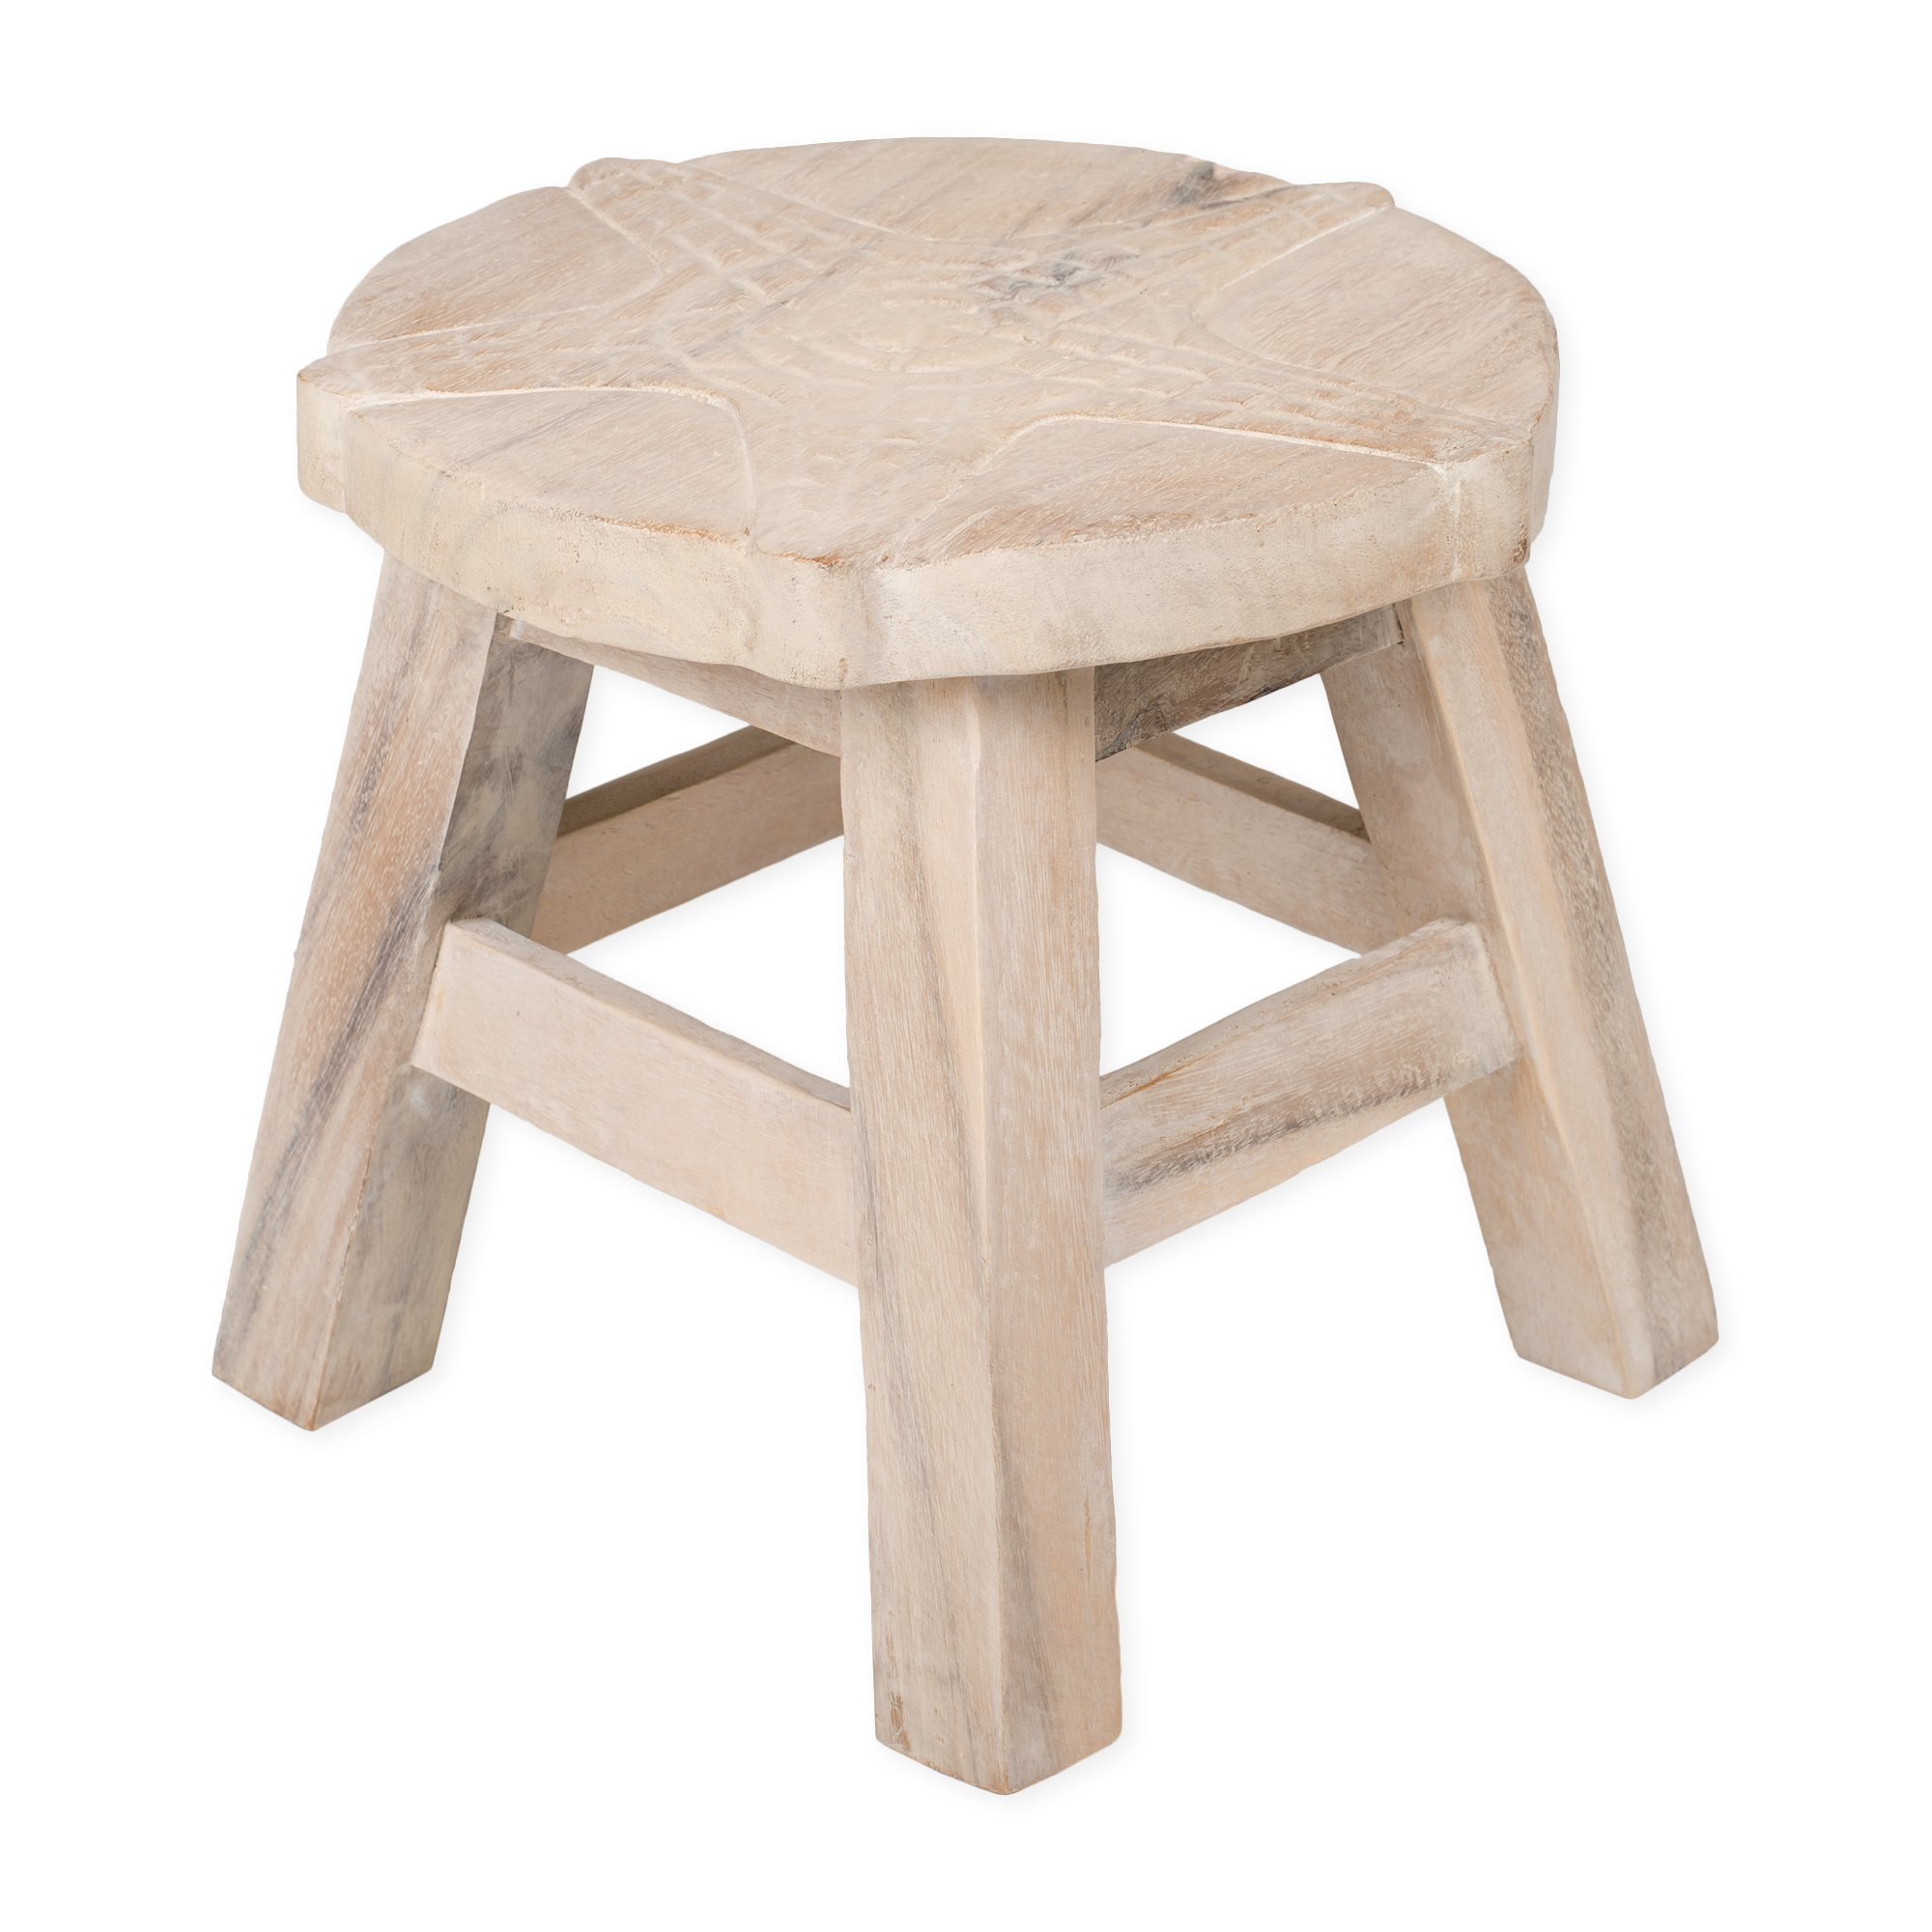 Starfish Whitewash Design Hand Carved Acacia Hardwood Decorative Short Stool